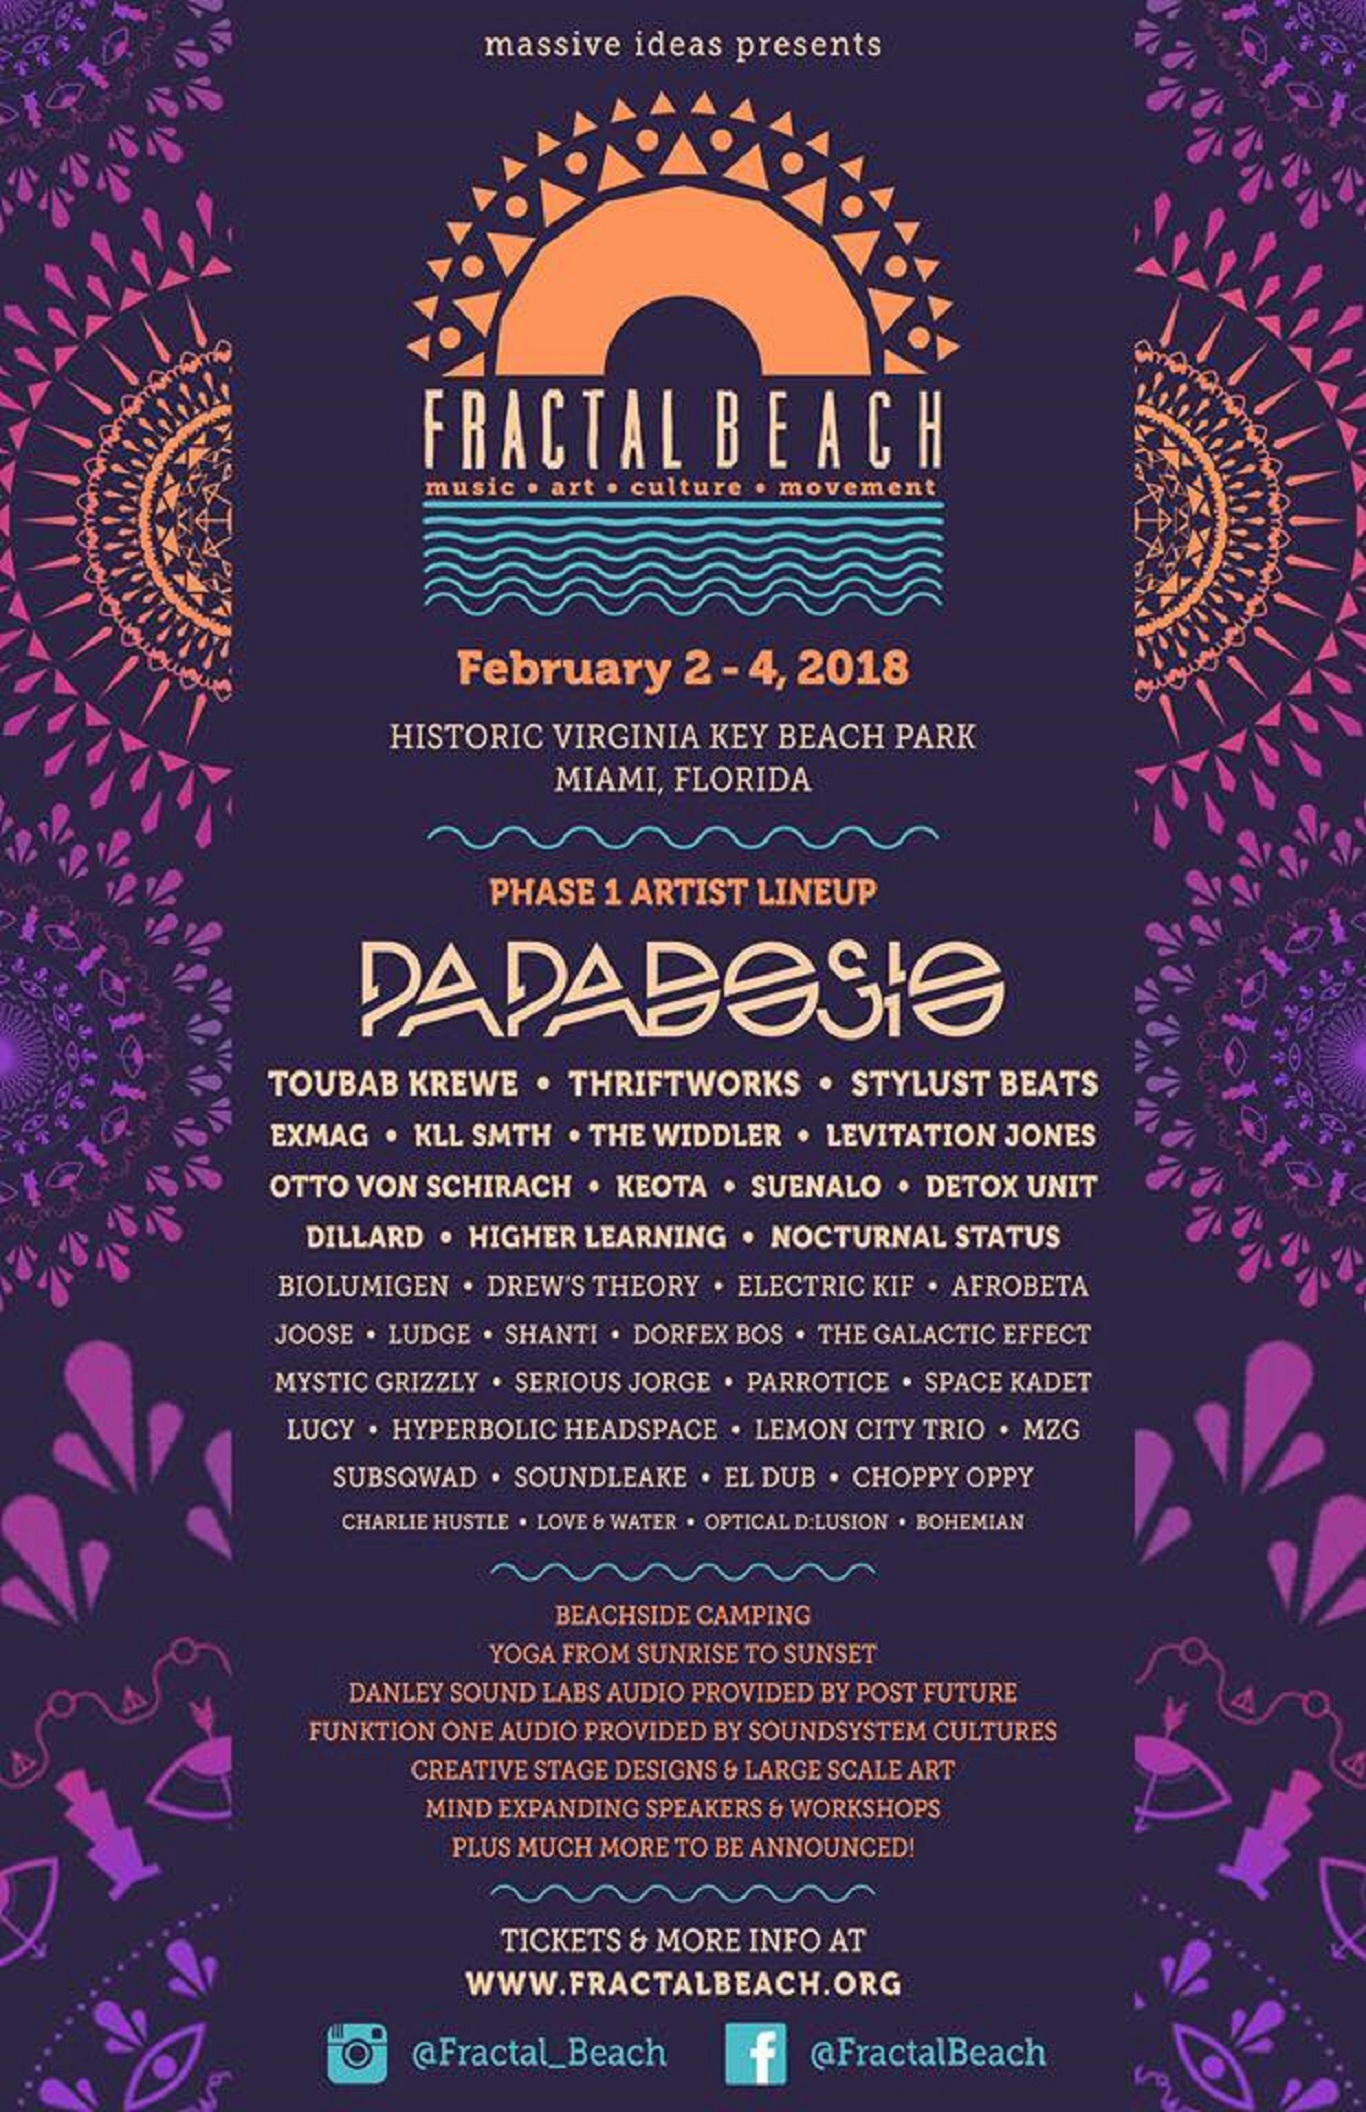 Fractal Beach 2018 Announces Lineup